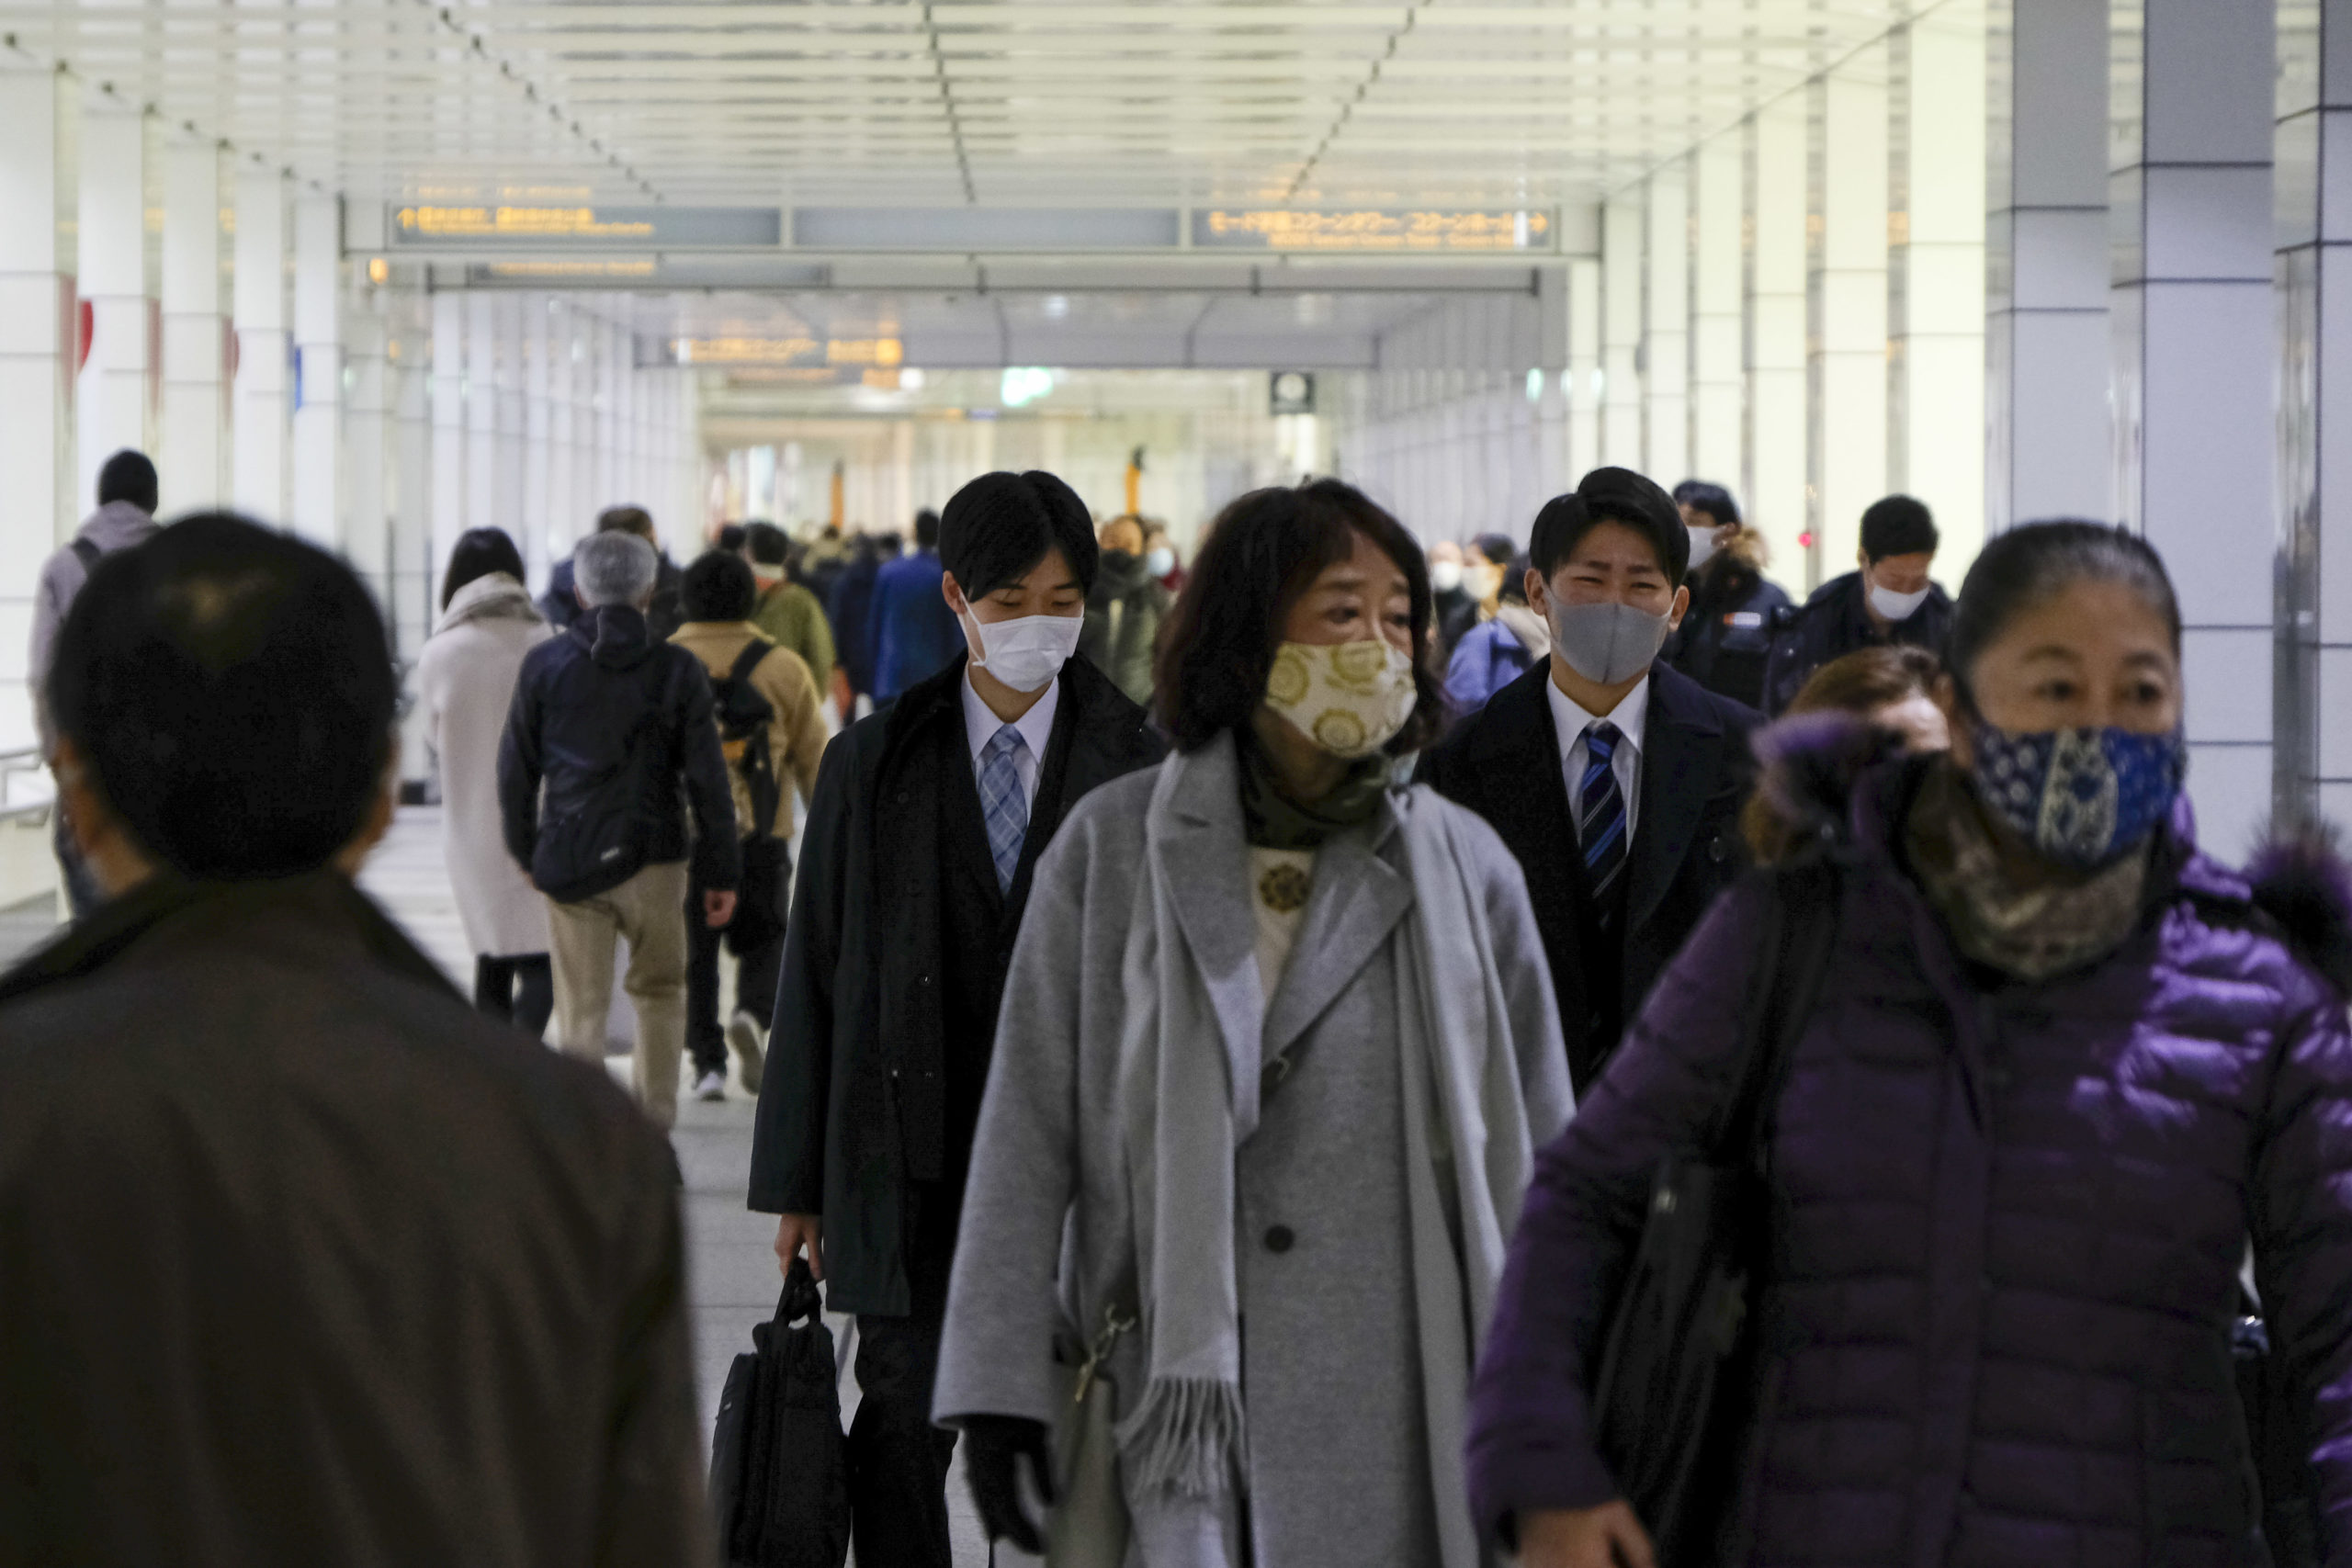 People walk on a concourse leading to the terminal station in Tokyo's Shinjuku district on January 6, 2021, as the city reported 1,591 infections of the Covid-19 coronavirus, a new record high for daily cases. (Photo by Kazuhiro NOGI / AFP) (Photo by KAZUHIRO NOGI/AFP via Getty Images)